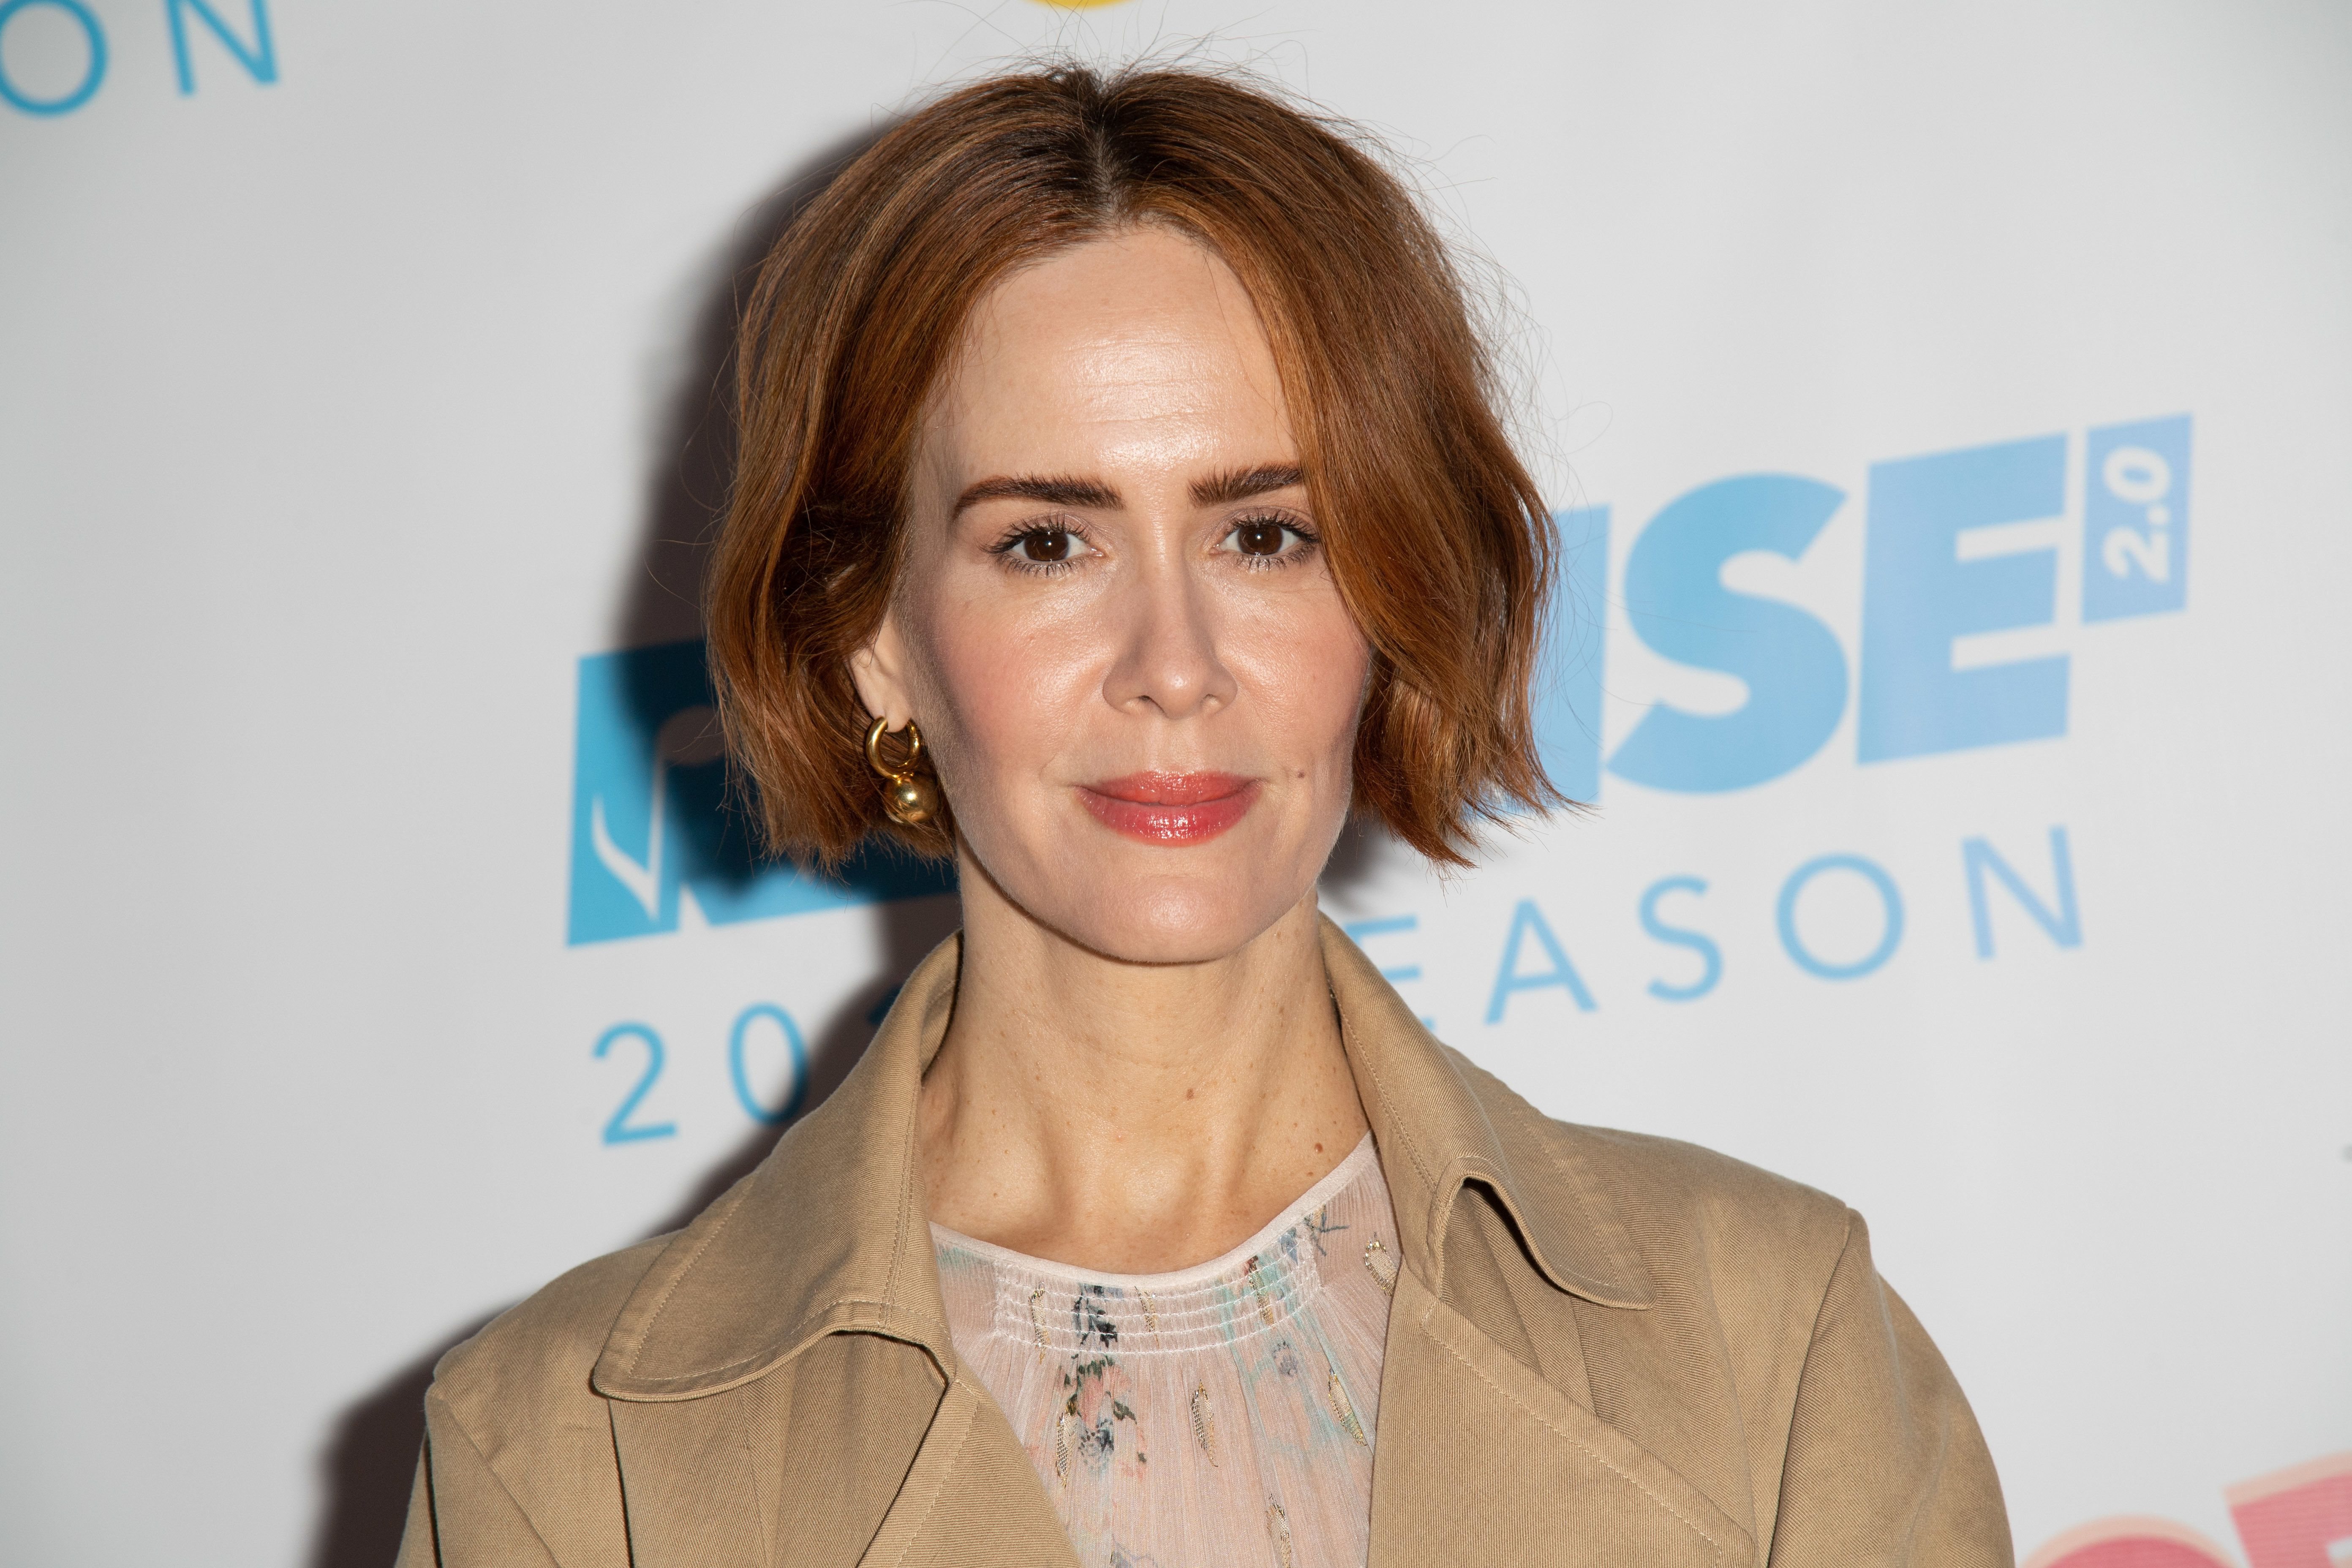 WESTWOOD, CA - JUNE 20:  Actress Sarah Paulson attends Reprise 2.0 Presents 'Sweet Charity' Opening Night Performance  at Freud Playhouse, UCLA on June 20, 2018 in Westwood, California.  (Photo by Earl Gibson III/Getty Images)